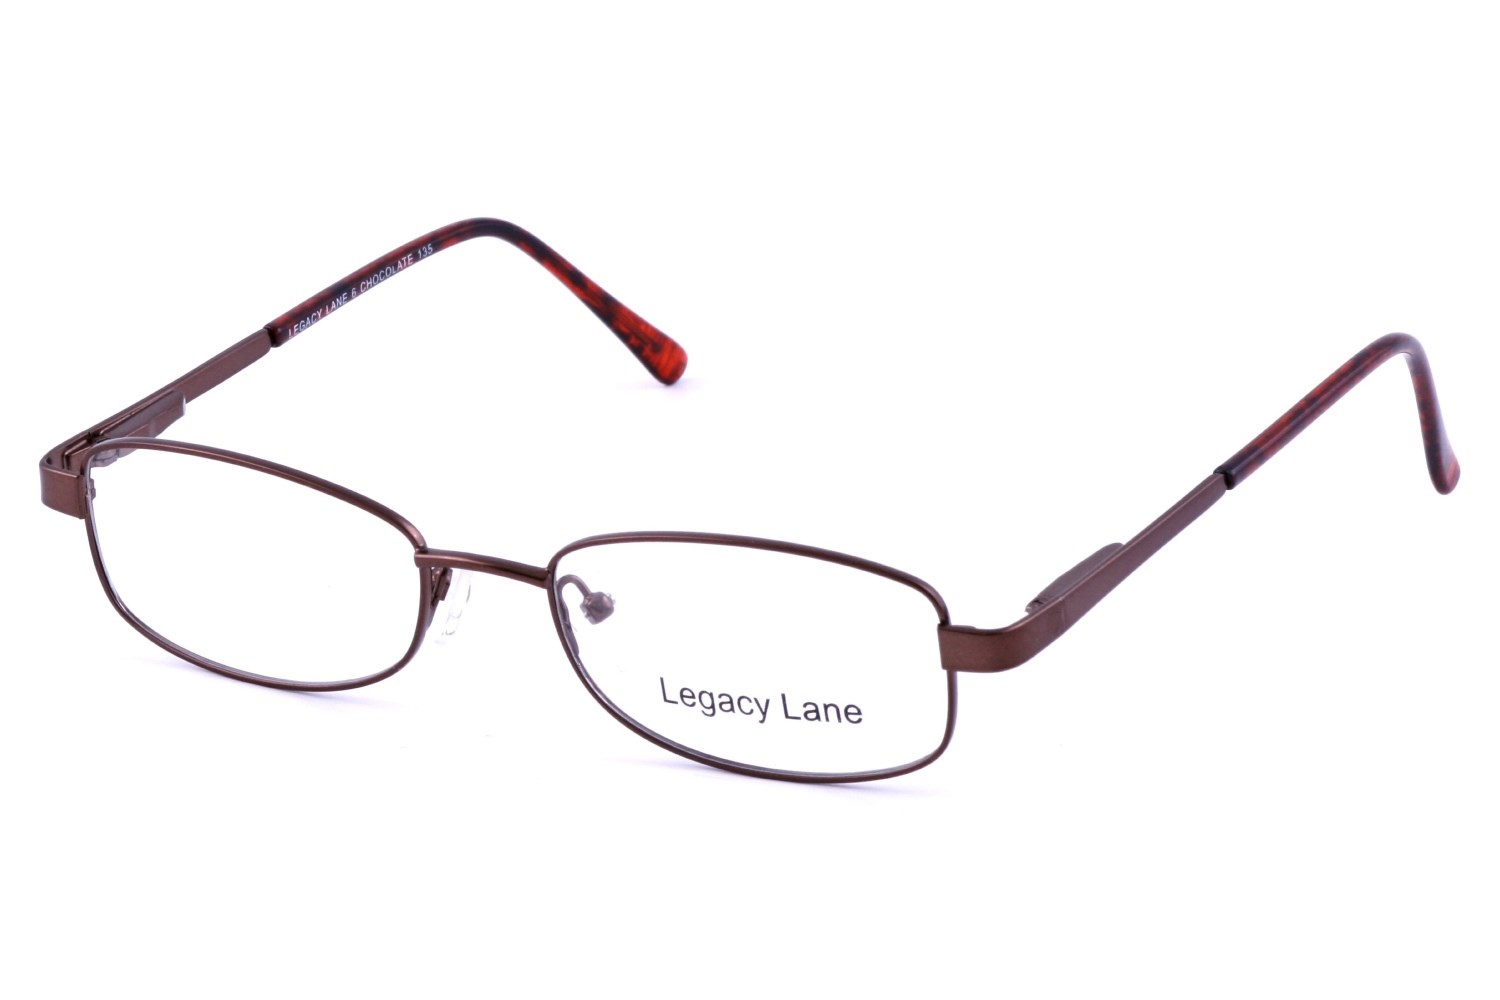 Legacy Lane 6 Prescription Eyeglasses Frames